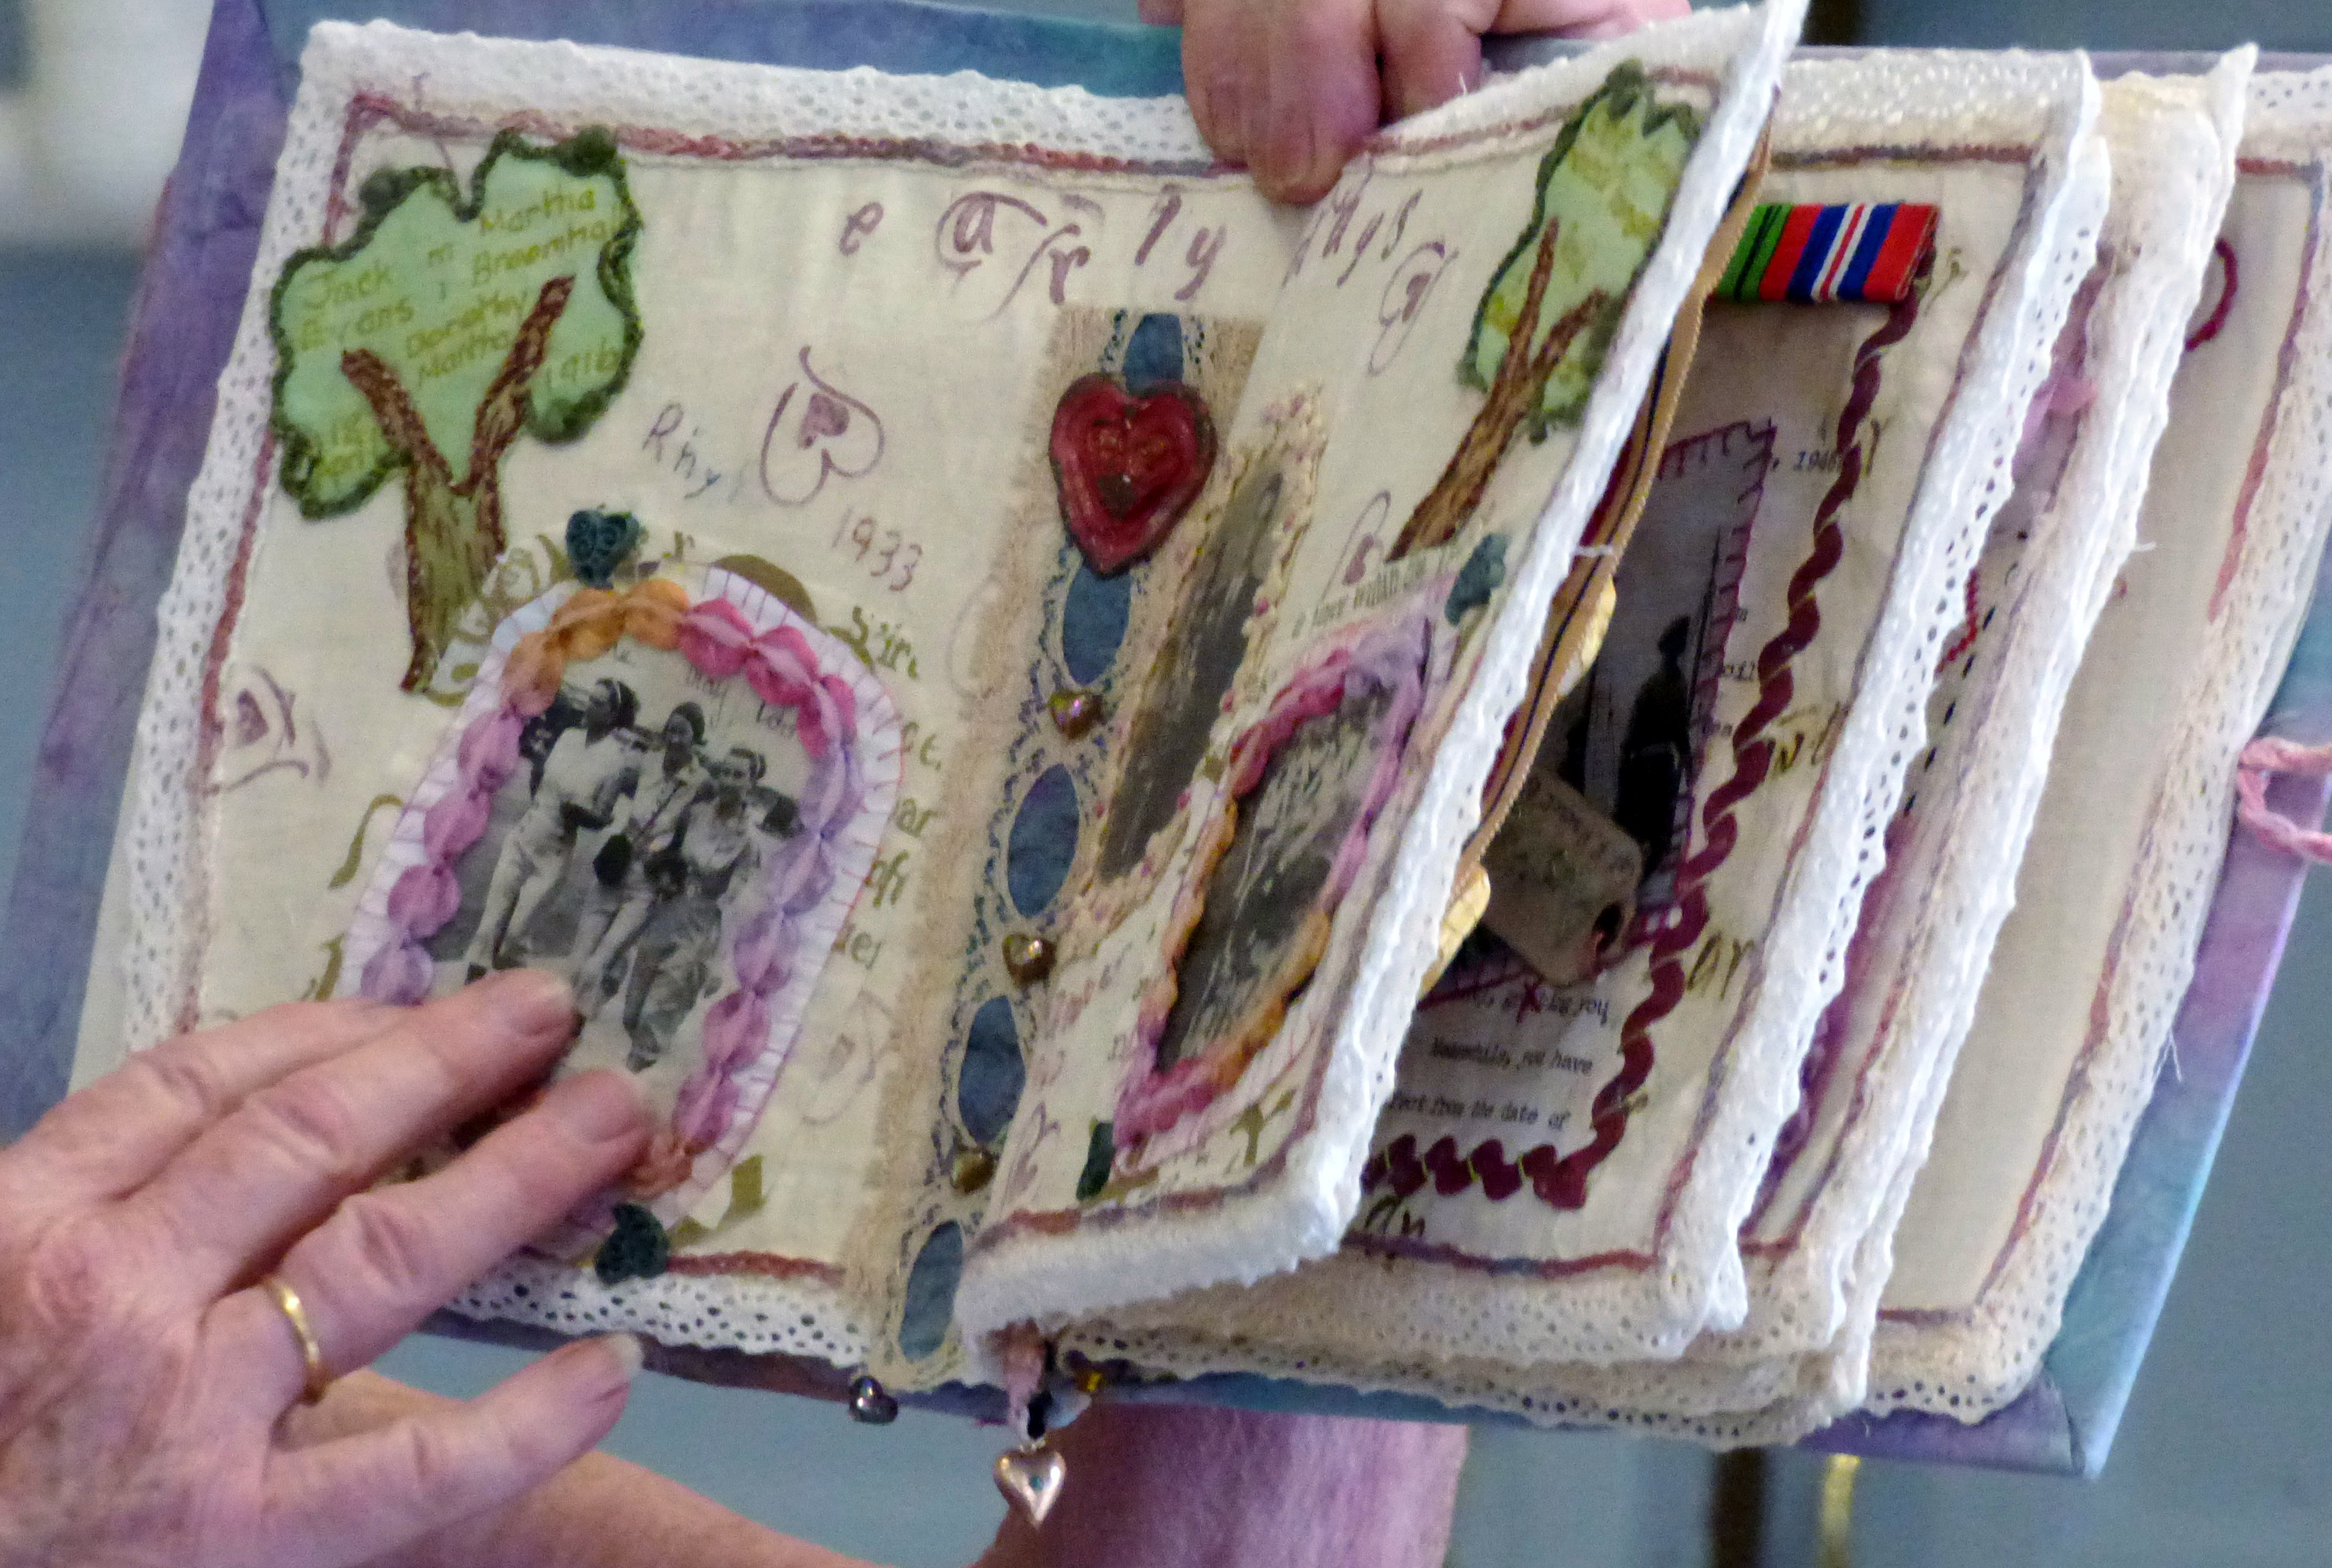 textile journal by Chris Harris on the life of her father